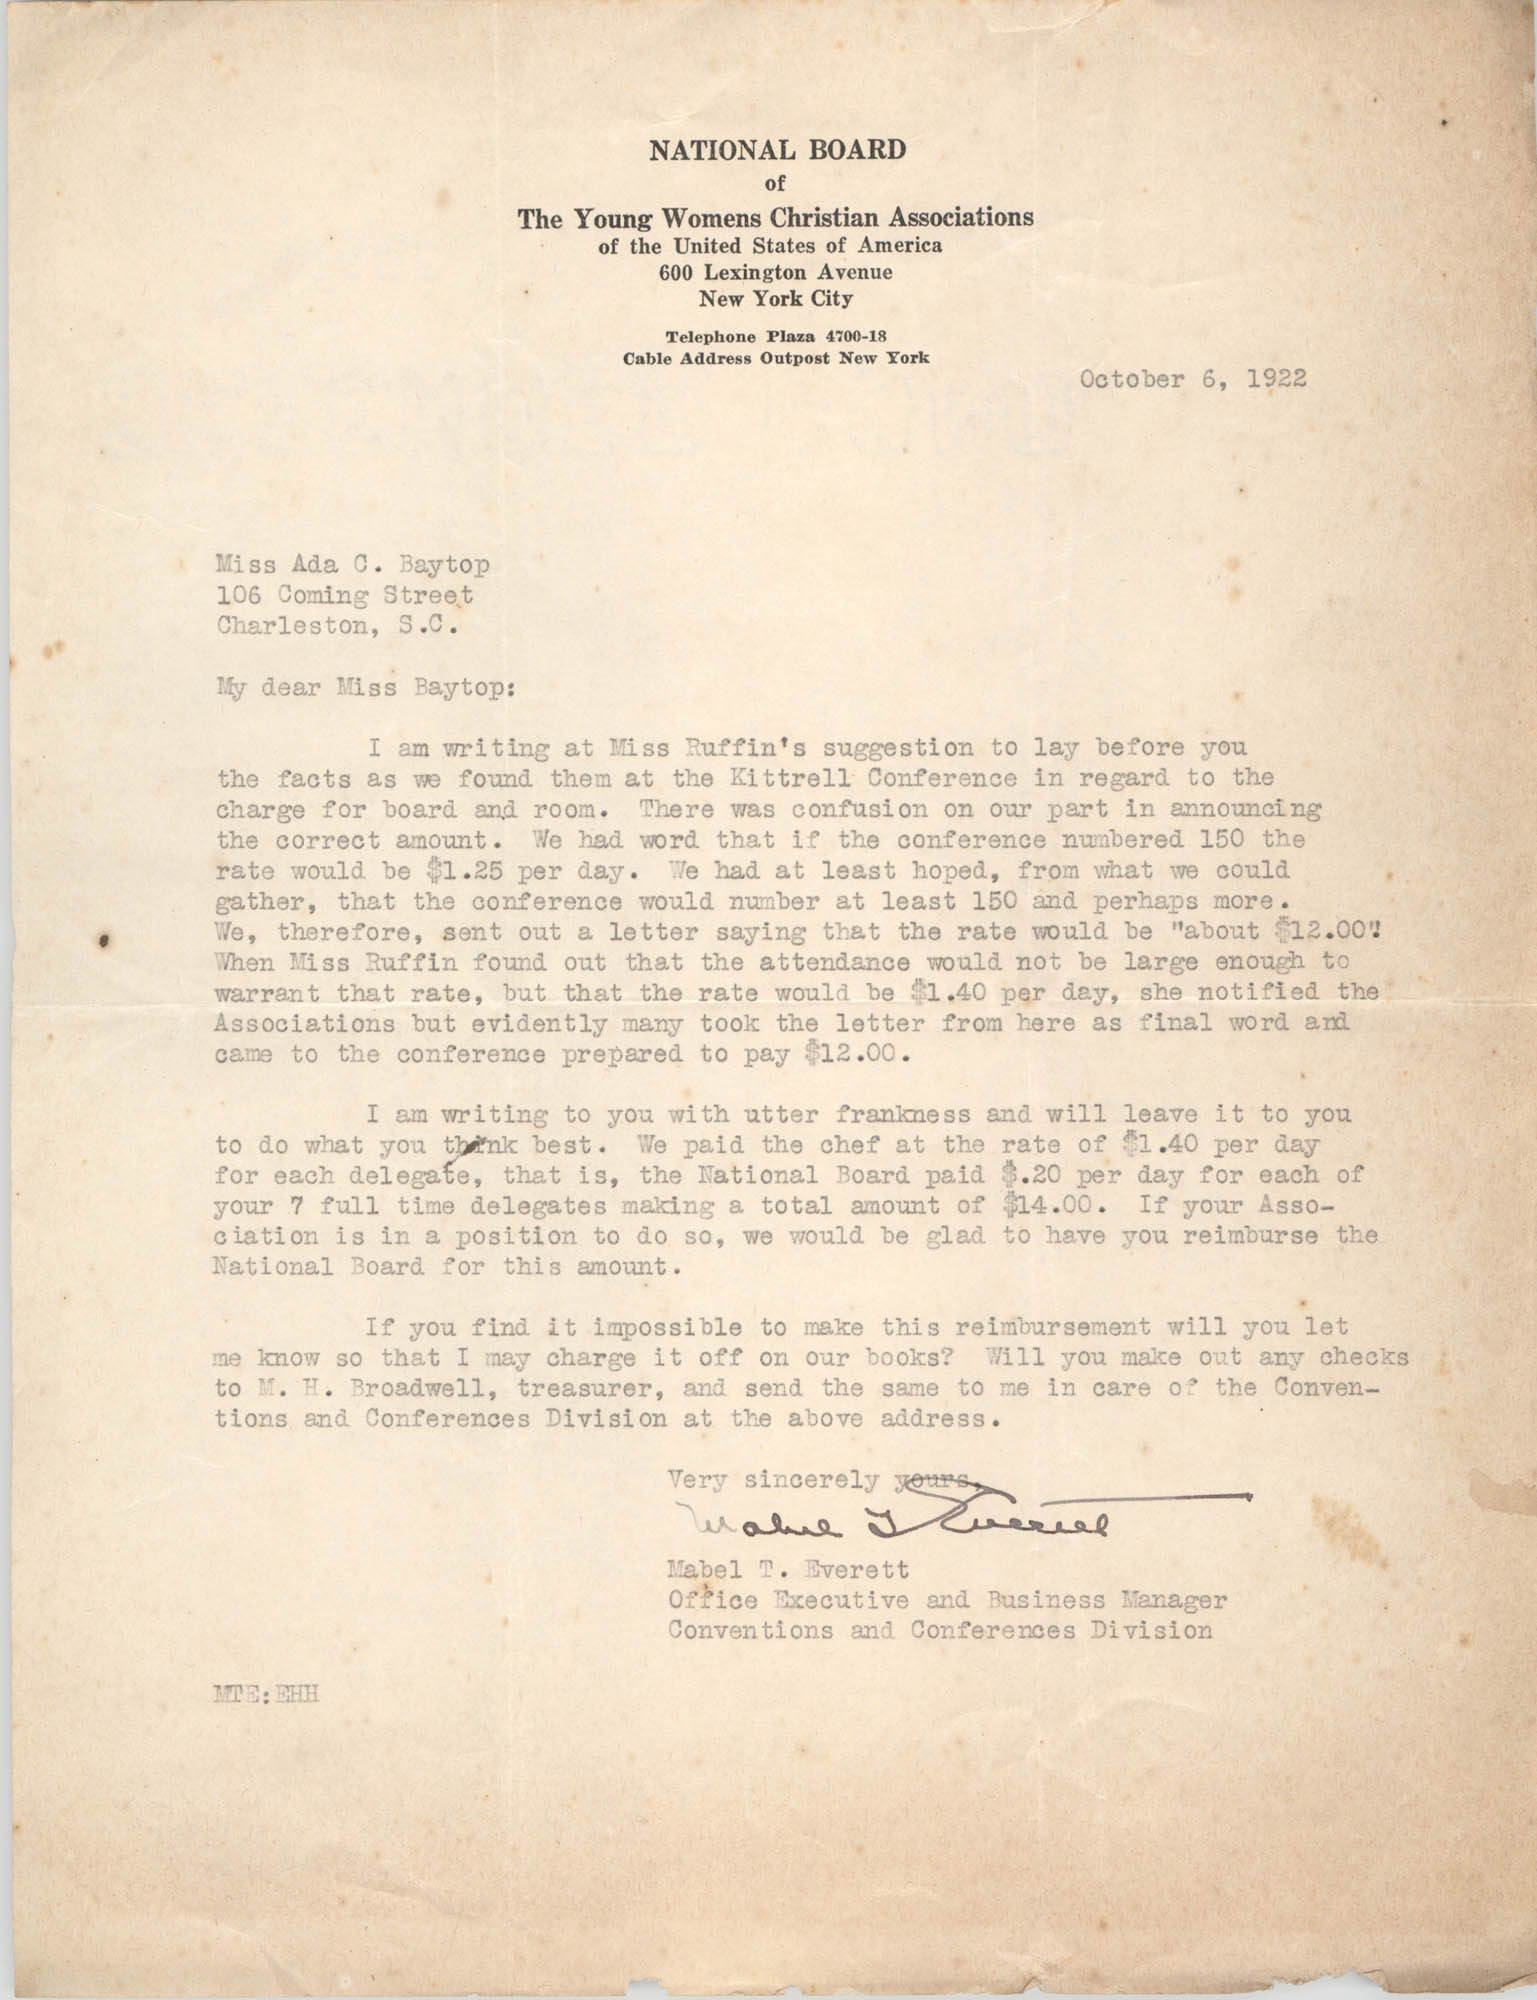 Letter from Madel T. Everett to Ada C. Baytop, October 6, 1922